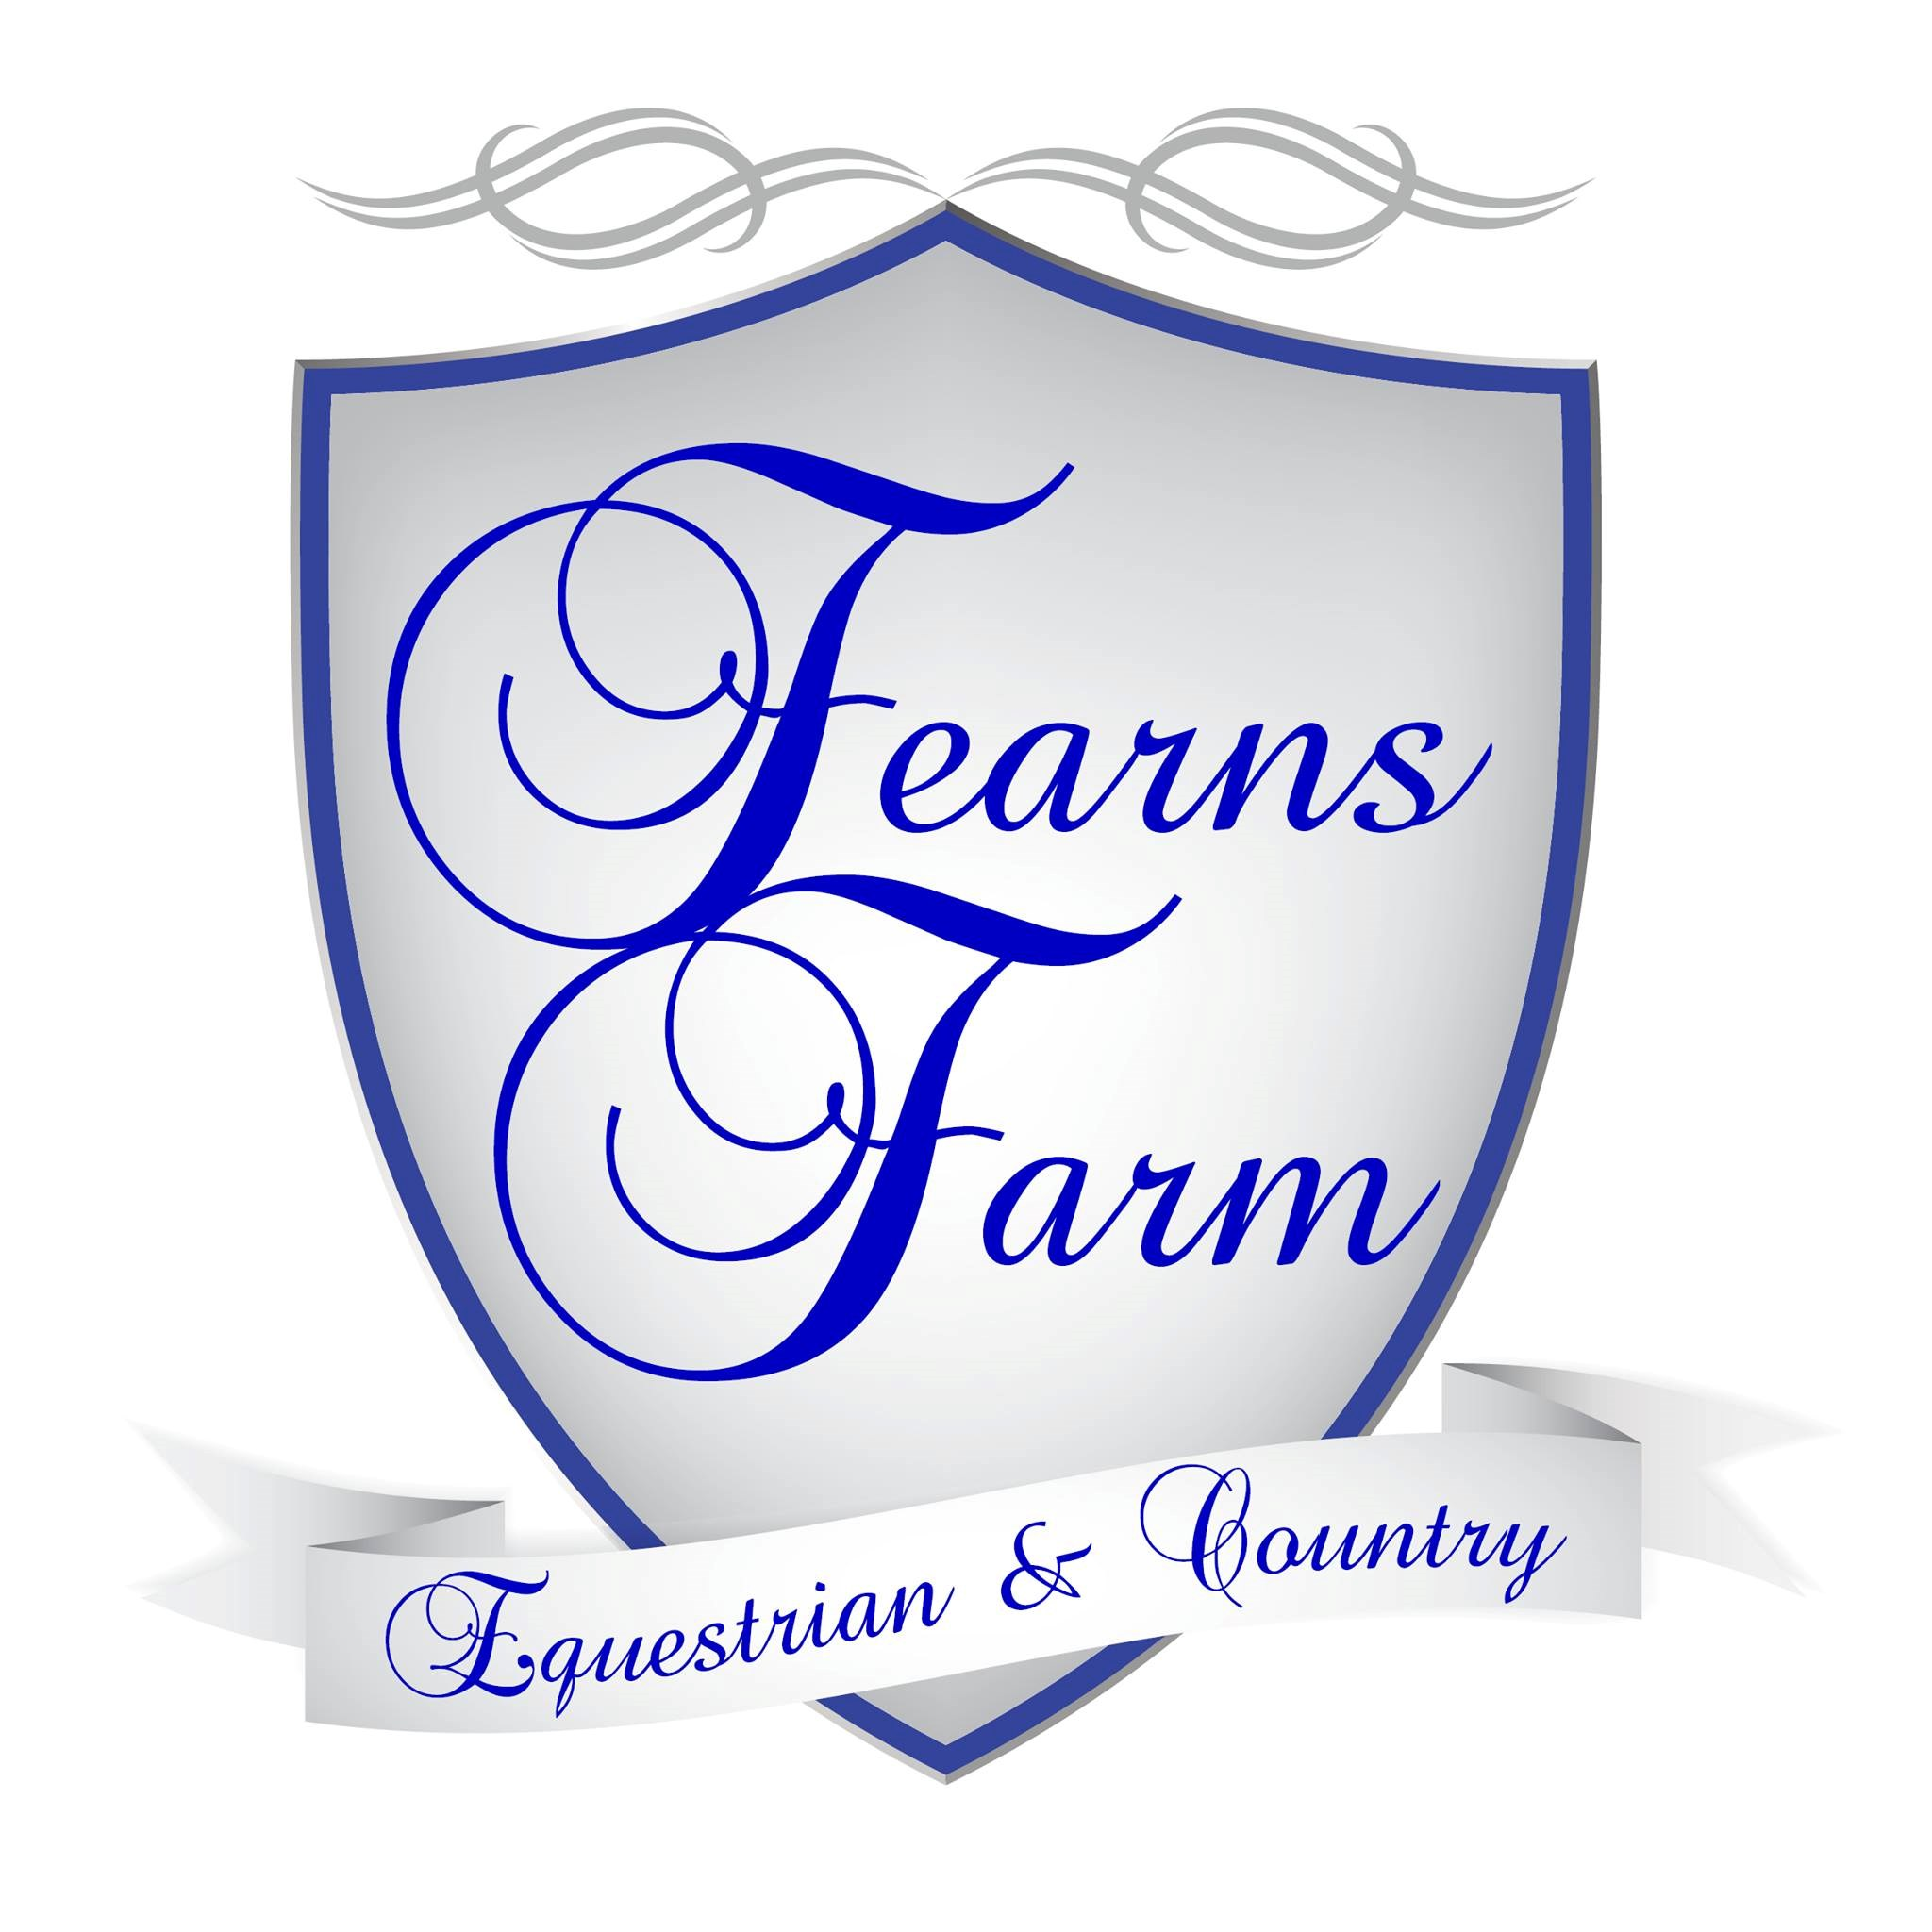 Fearns Farm Equestrian and Country